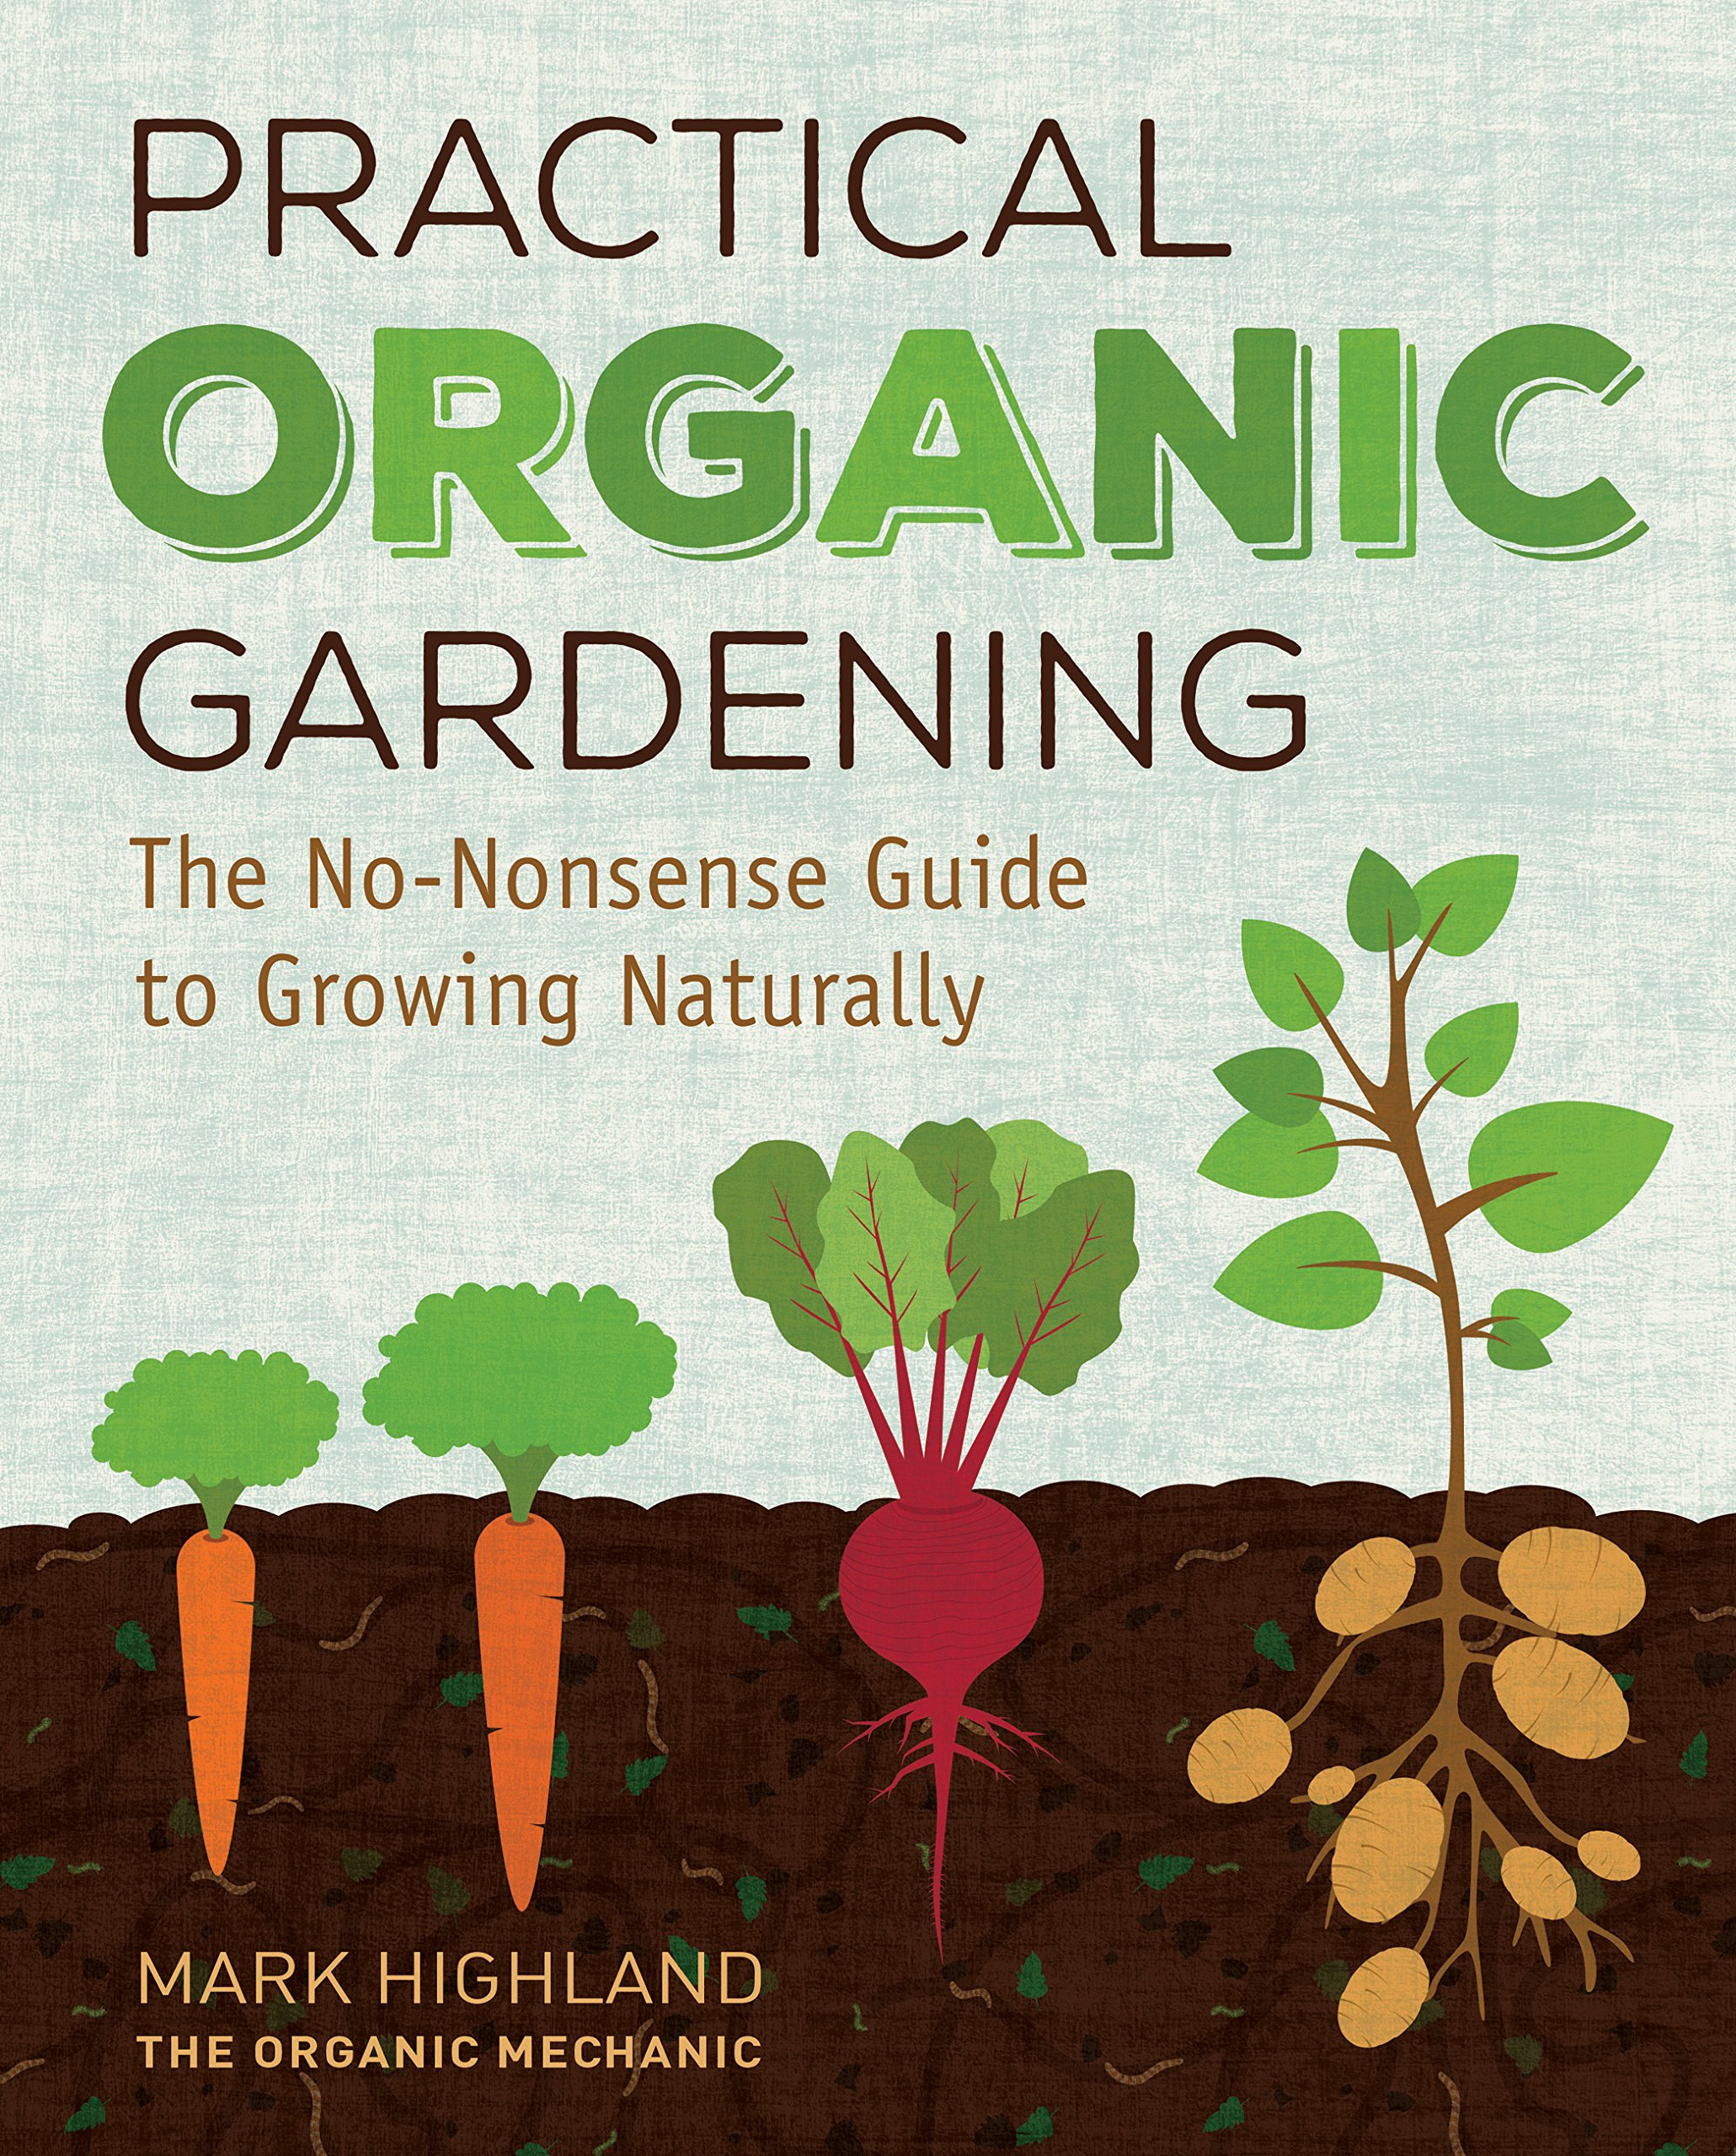 Practical Organic Gardening: The No-Nonsense Guide to Growing Naturally:  Mark Highland: 9781591866879: Amazon.com: Books